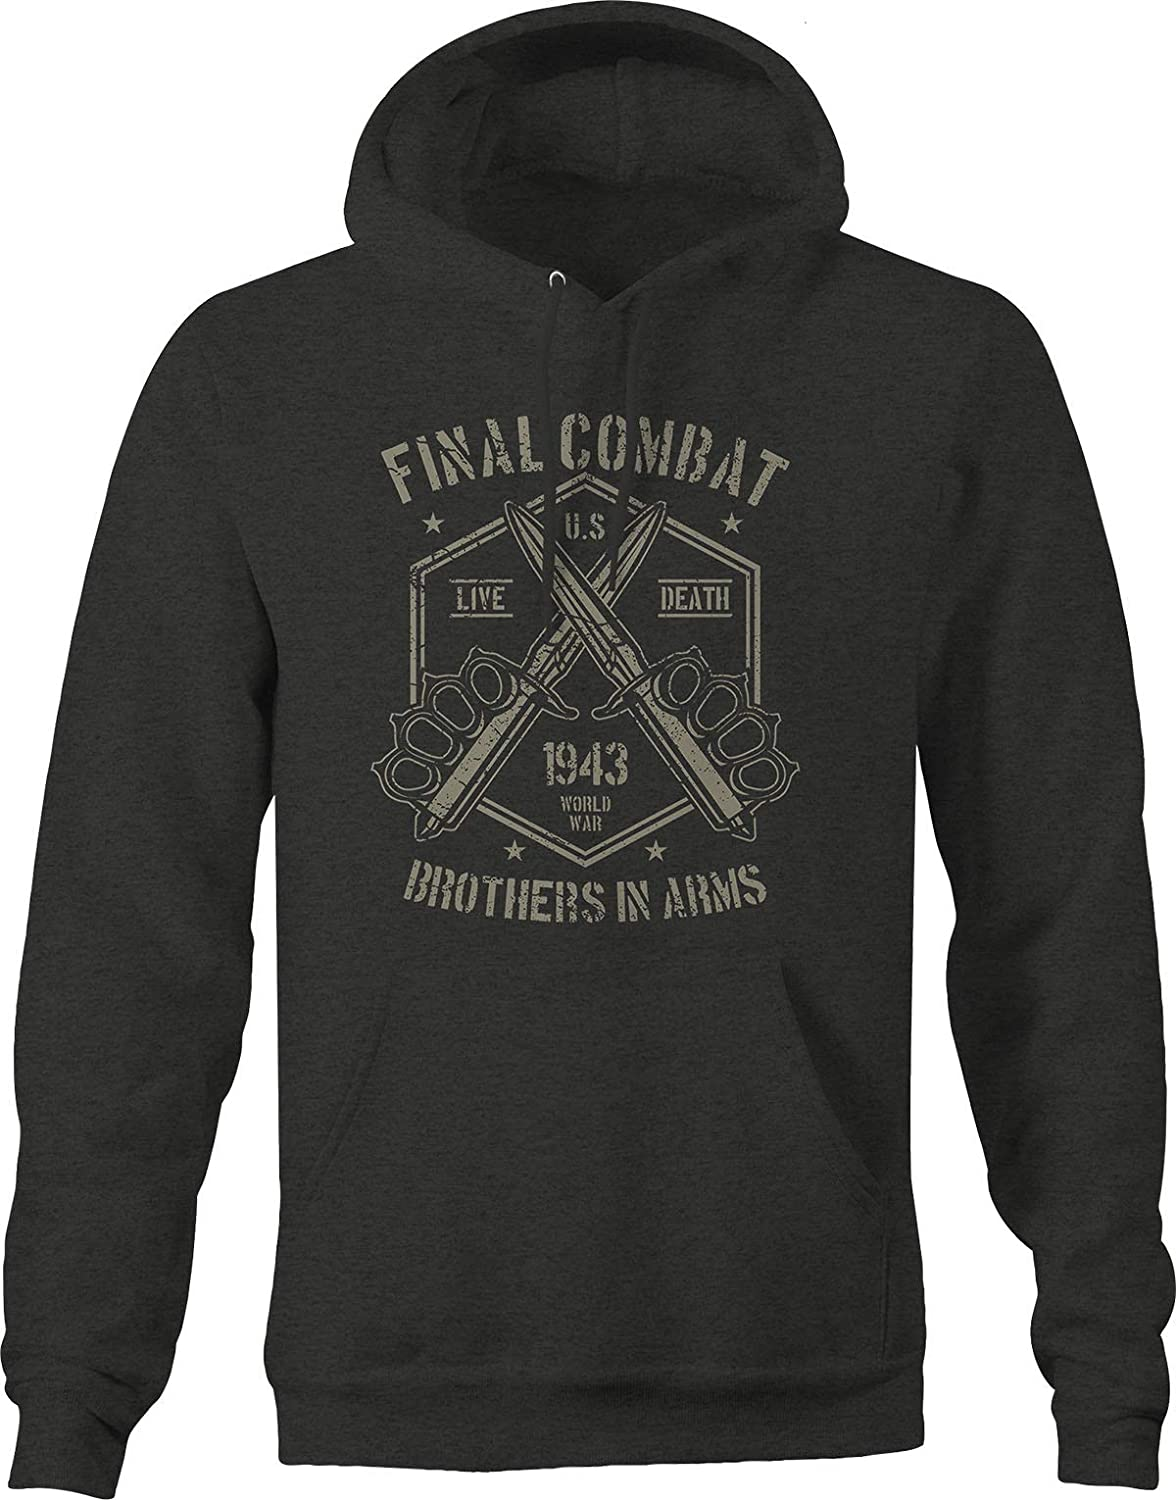 Final Combat Brothers Super Special SALE Branded goods held in Arms 1943 WW2 3XL for Men Da Hoodie Big